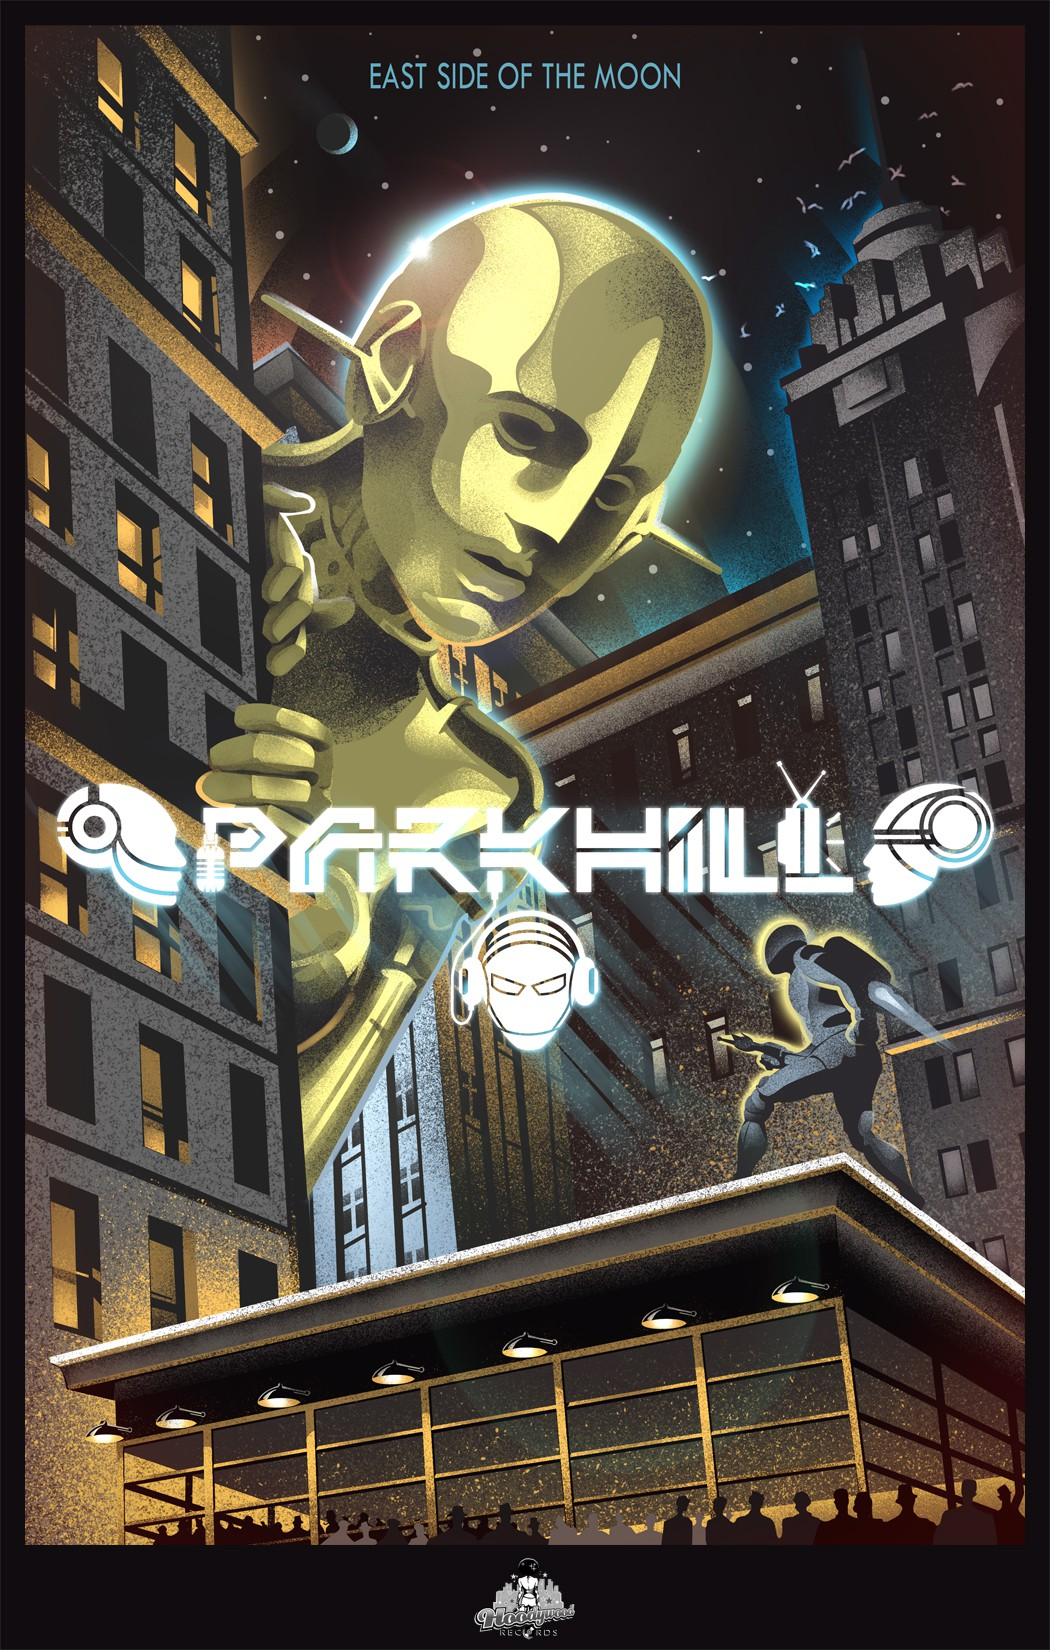 Create a Parkhill concert poster